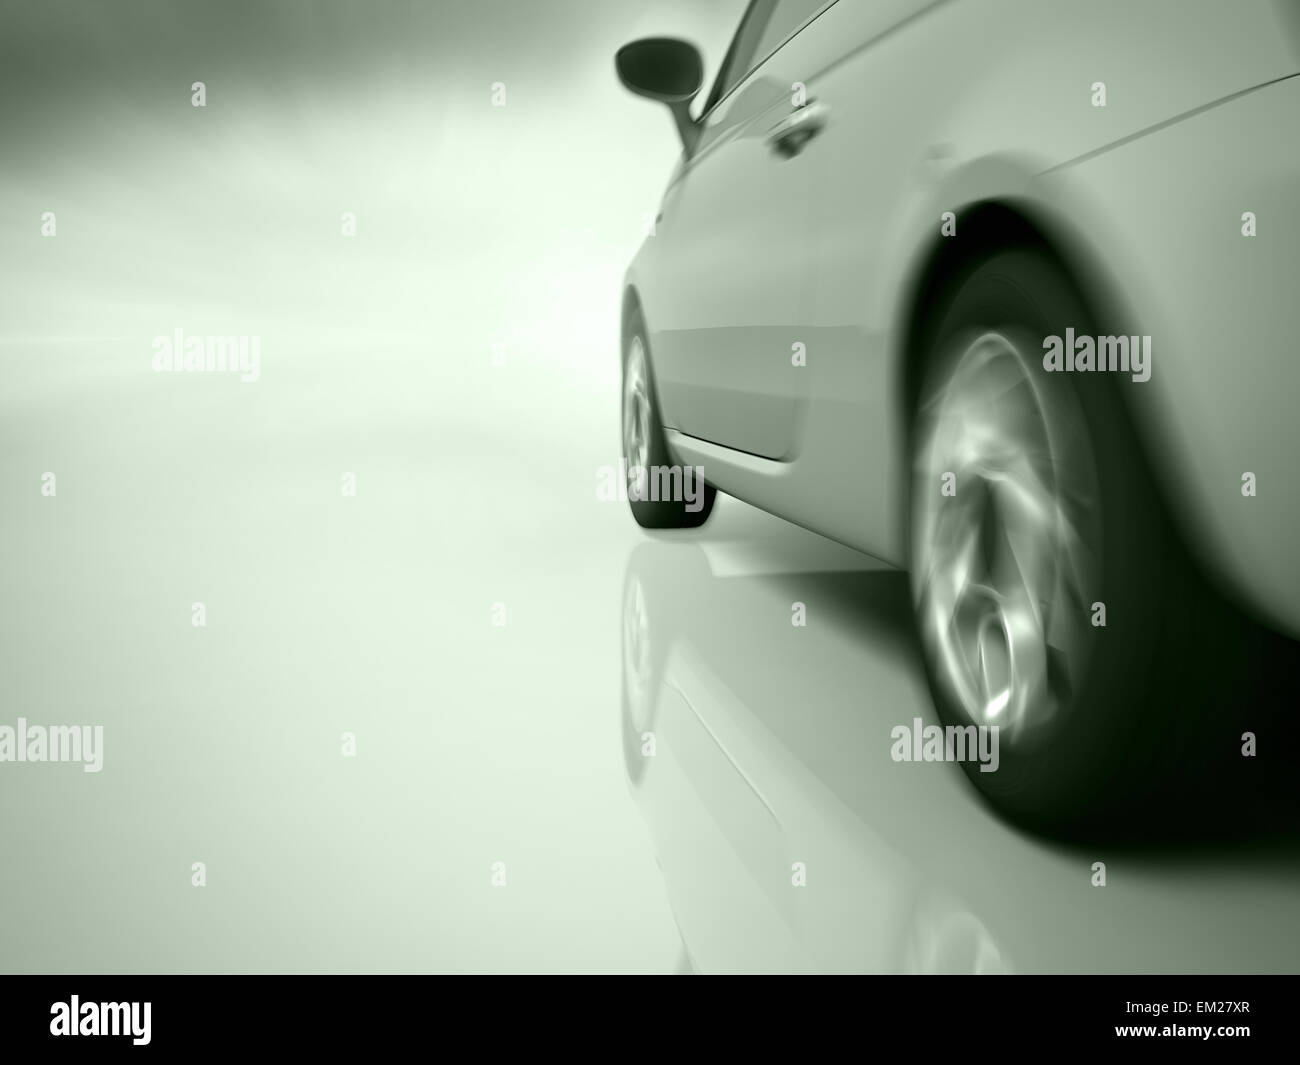 car running toward in motion blur background. - Stock Image